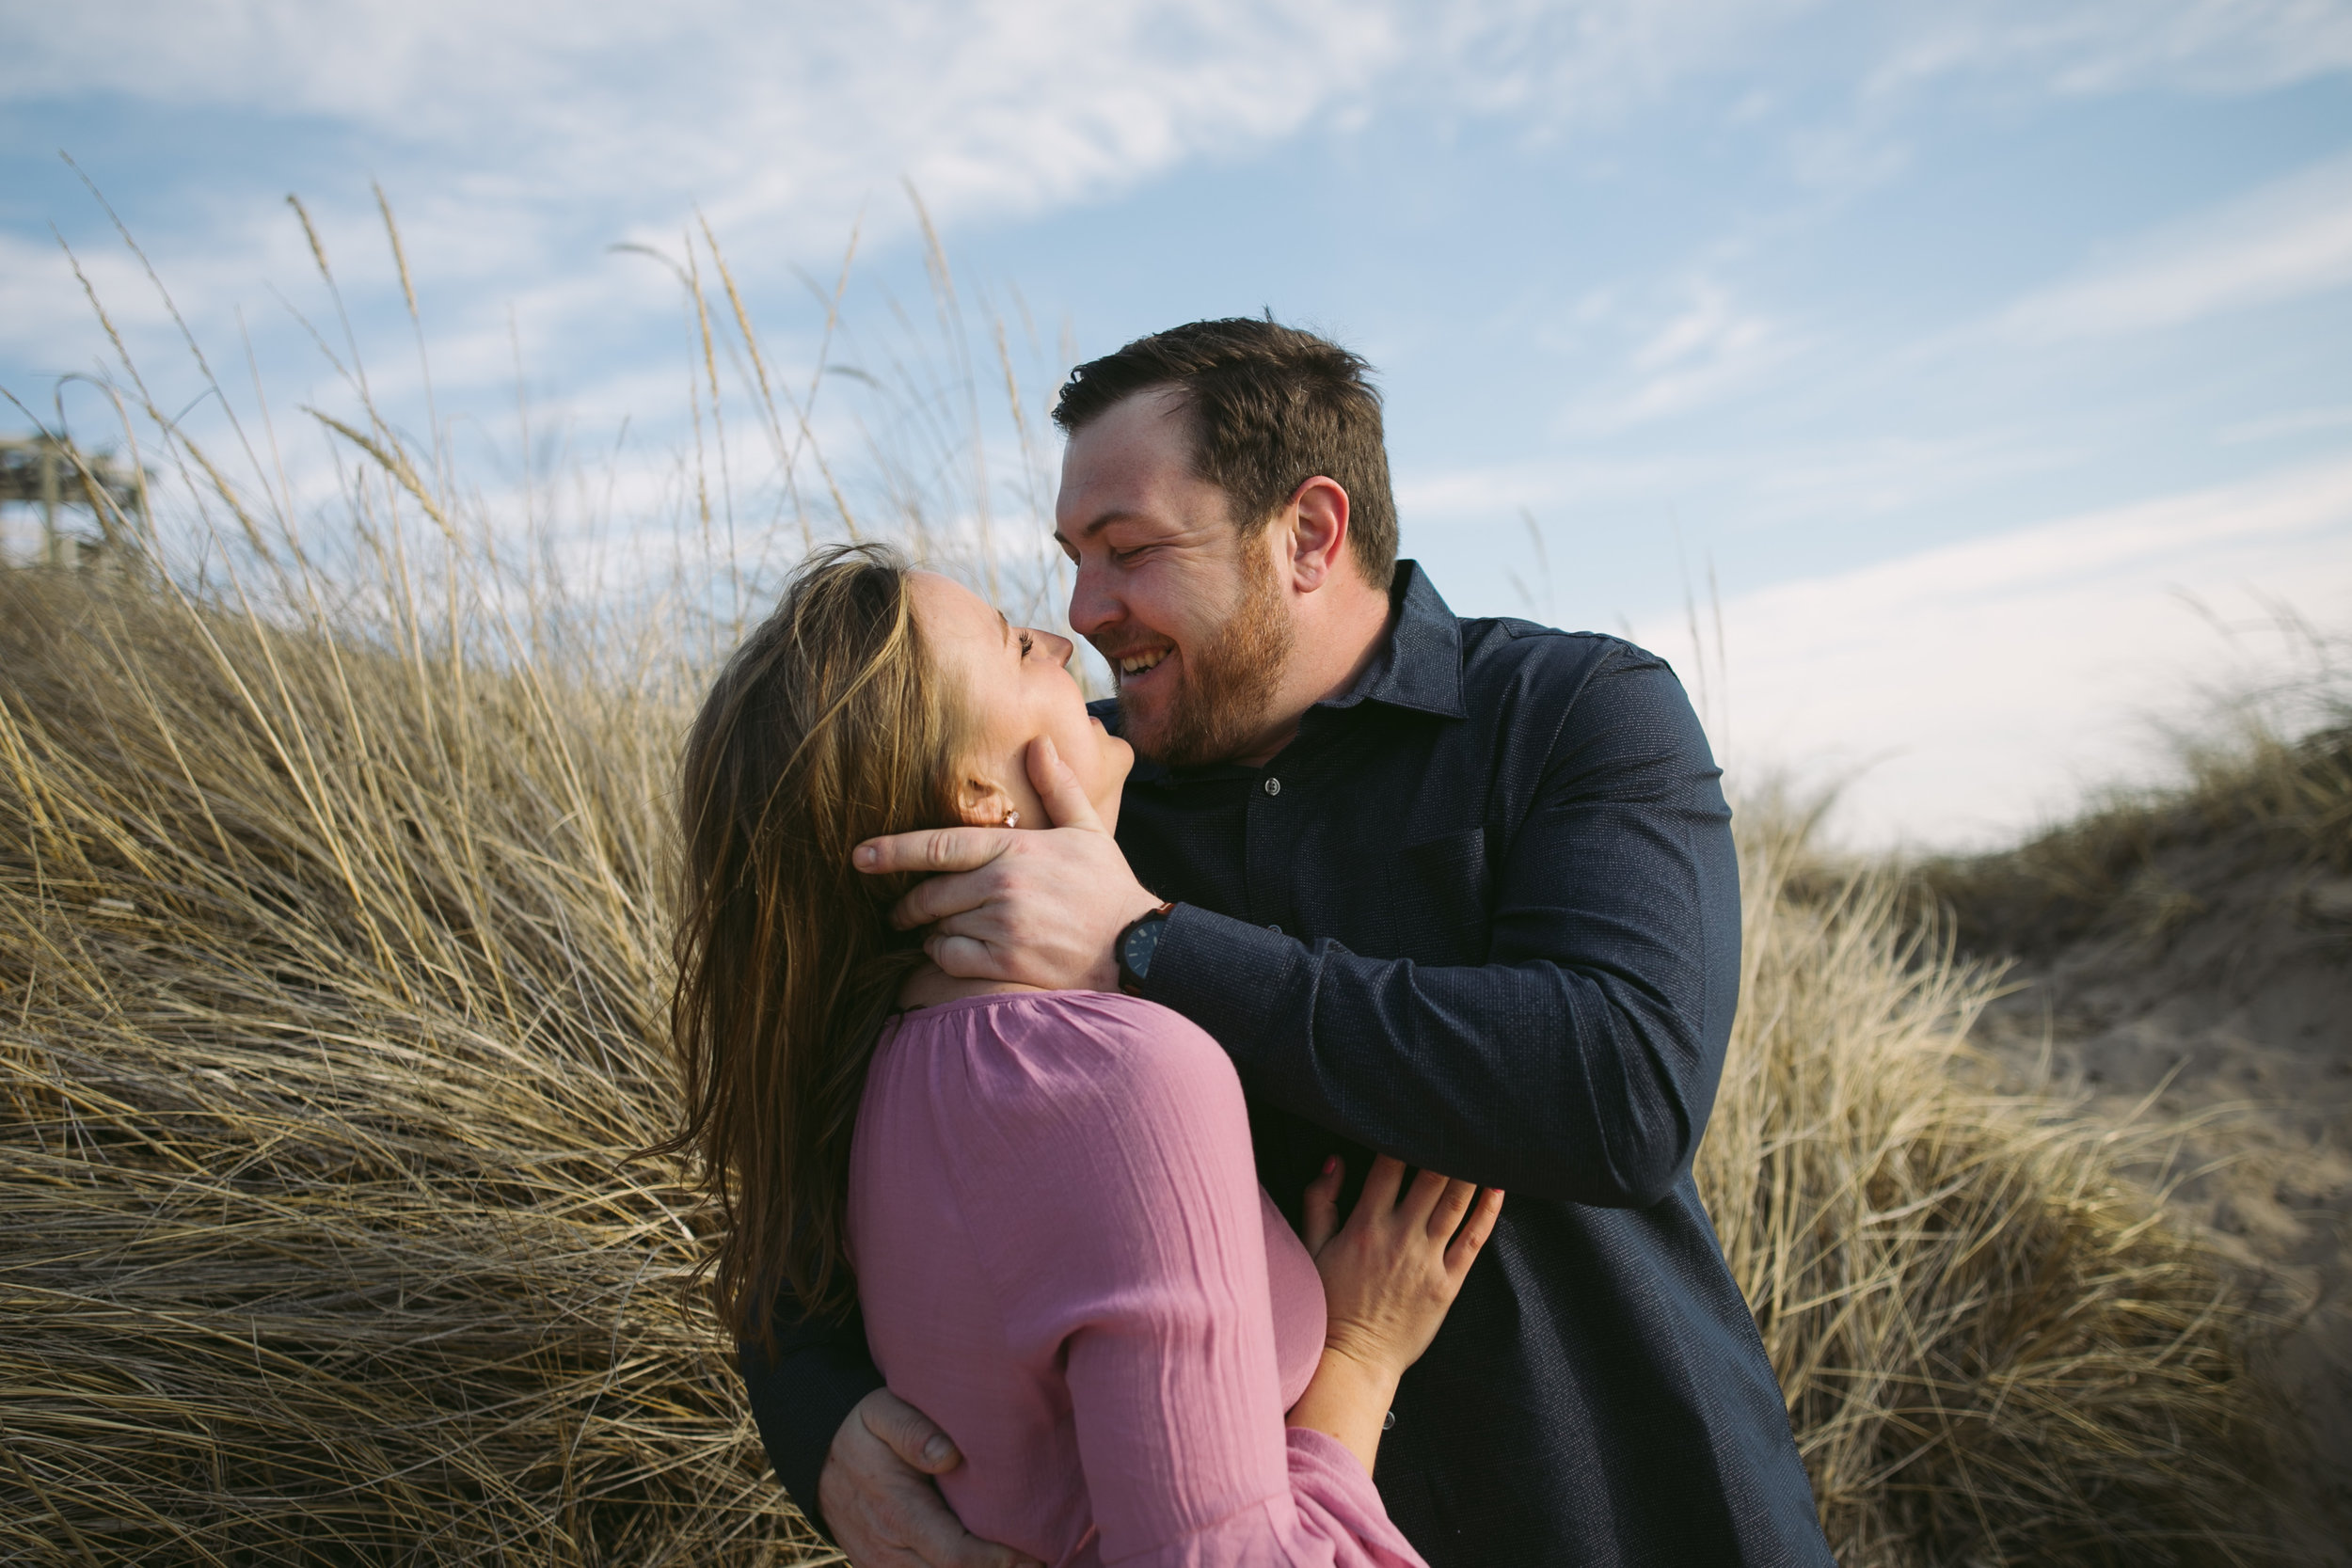 grandrapidsphotographer_hollandmichigan_hollandphotographer_lakemichigan_beachwedding_grandrapids_engaged_jessicadarling_jdarlingphoto_beachengagement011.jpg